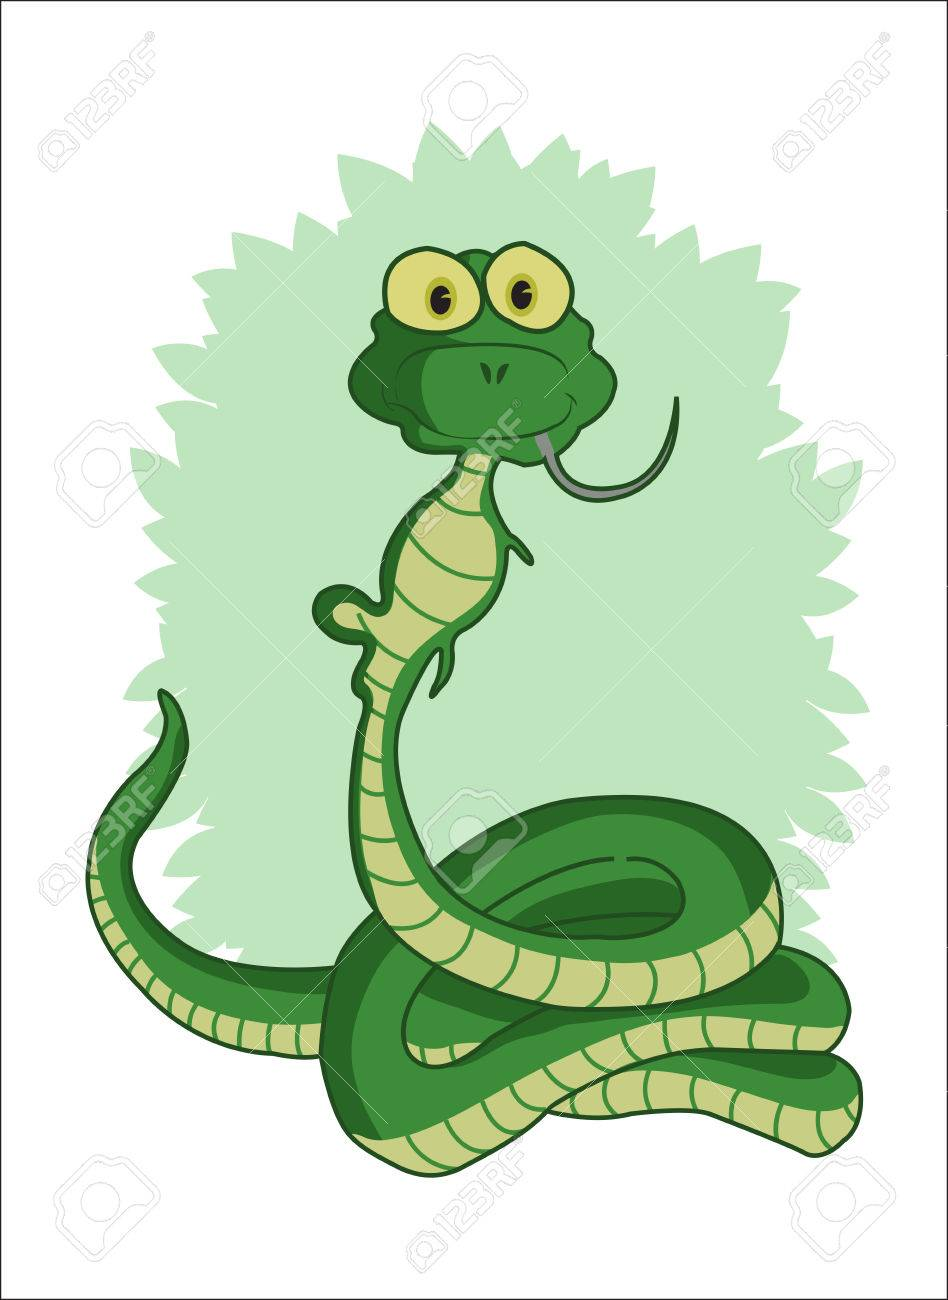 nake eating mouse Stock Vector - 24018126